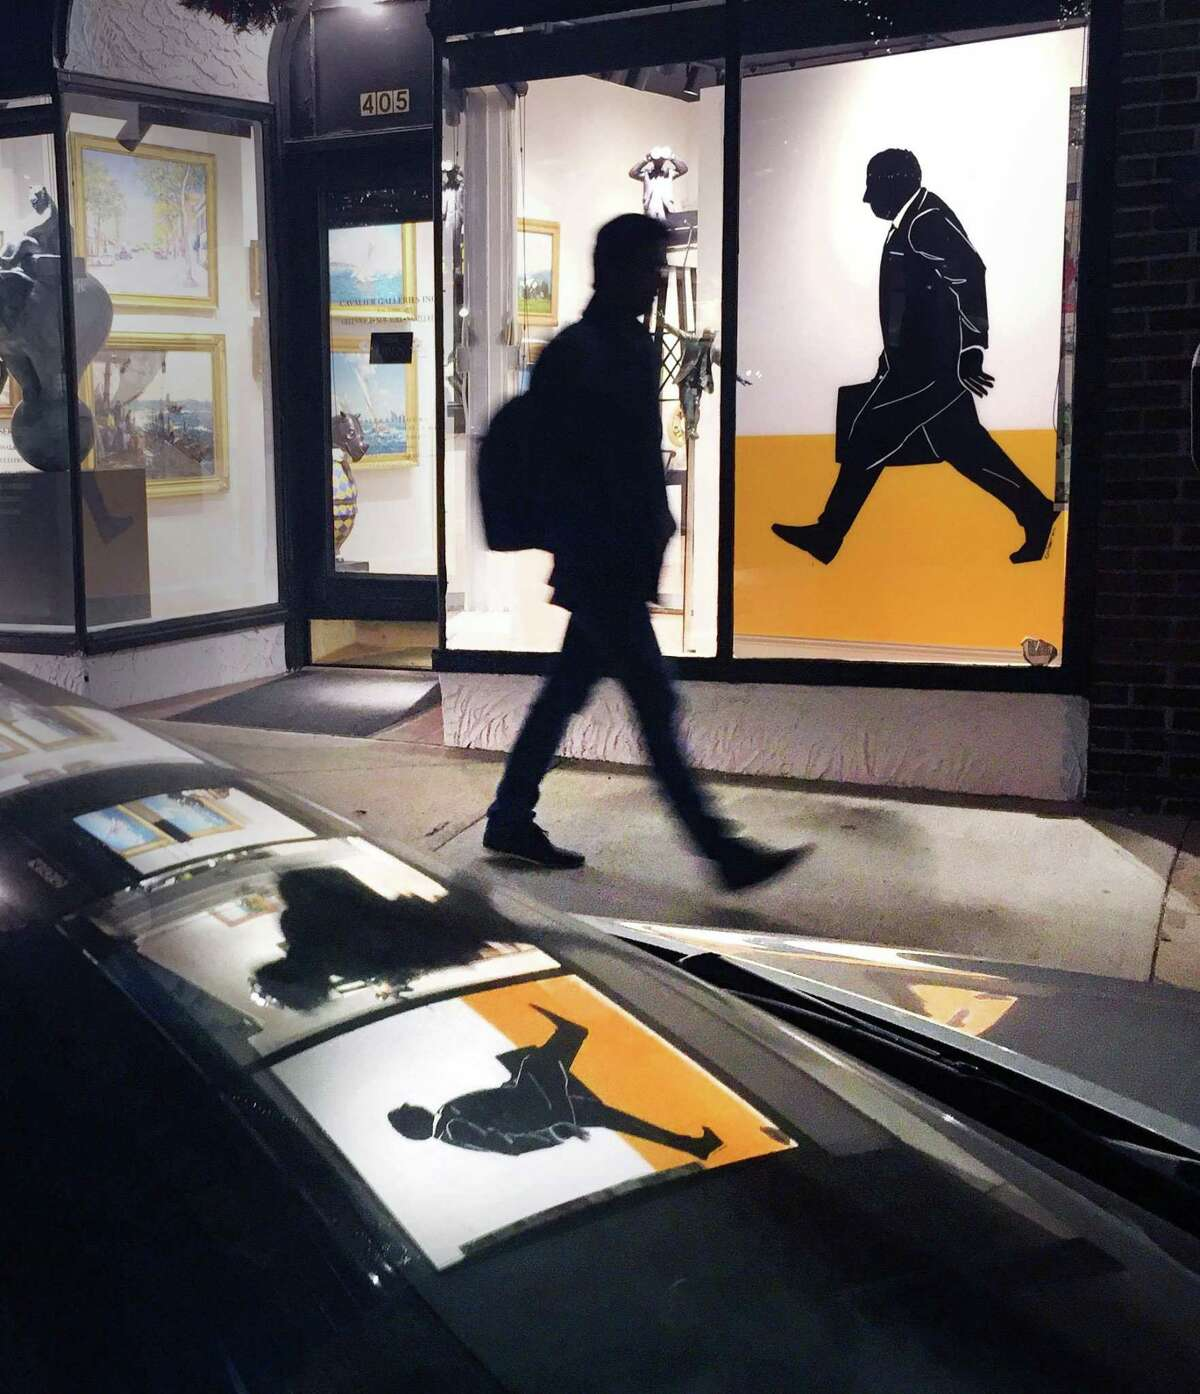 The silhouette of a pedestrian walking past a downtown Greenwich art gallery brings to mind the old saying